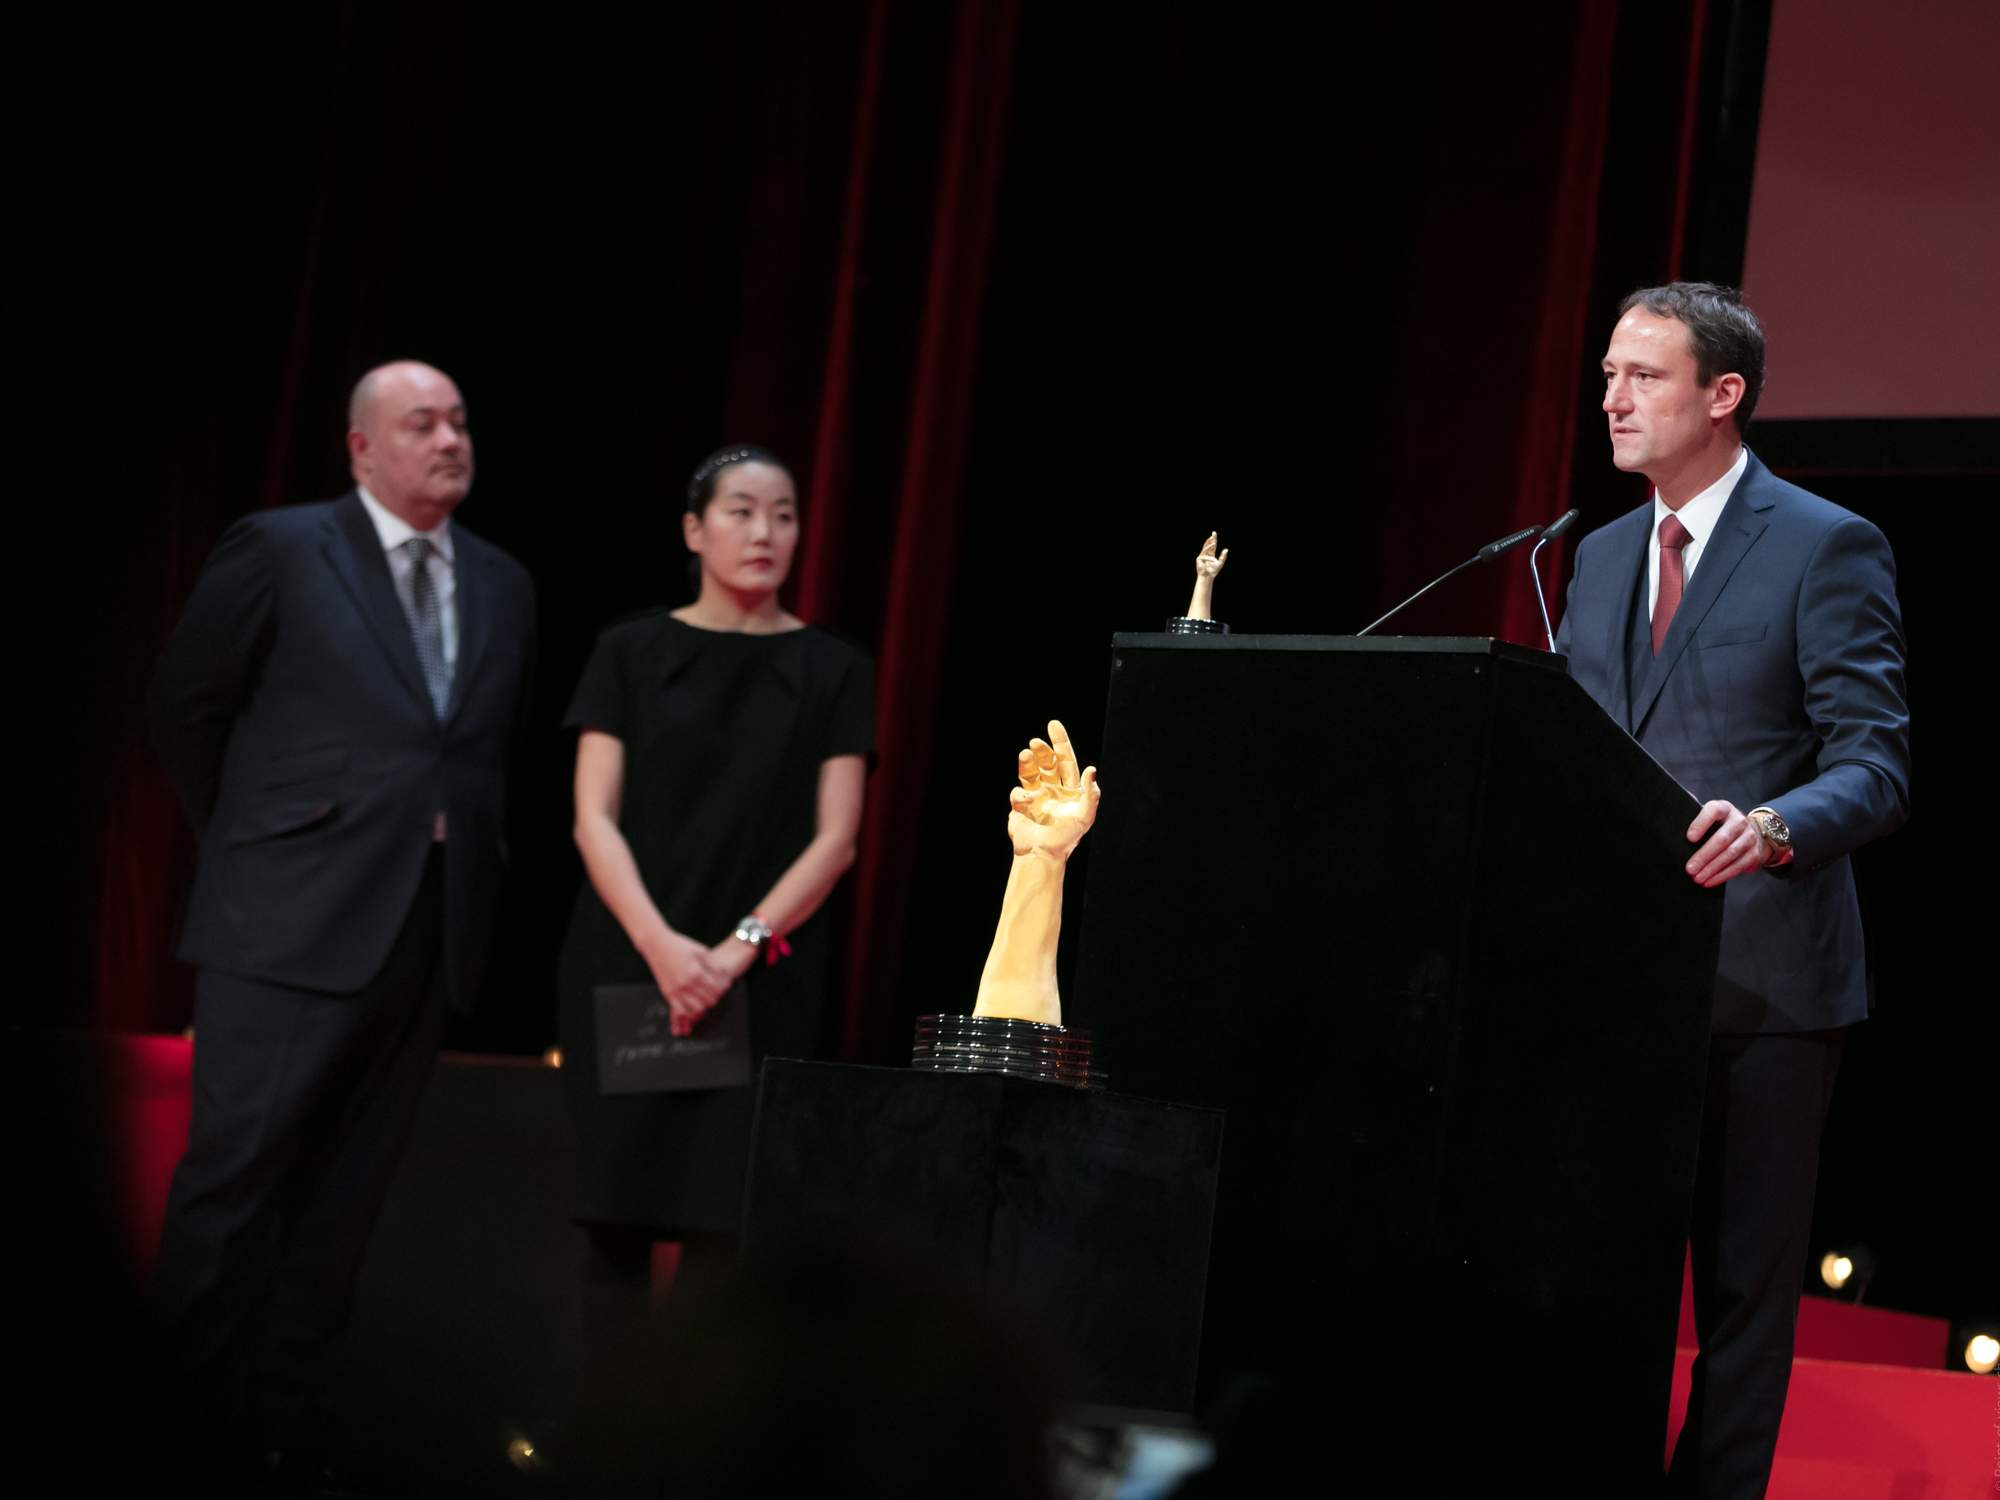 William Rohr, Heekyung Jung (jury members) and Eric Pirson (Director of Tudor, winner of the « Petite Aiguille » Watch Prize 2016)